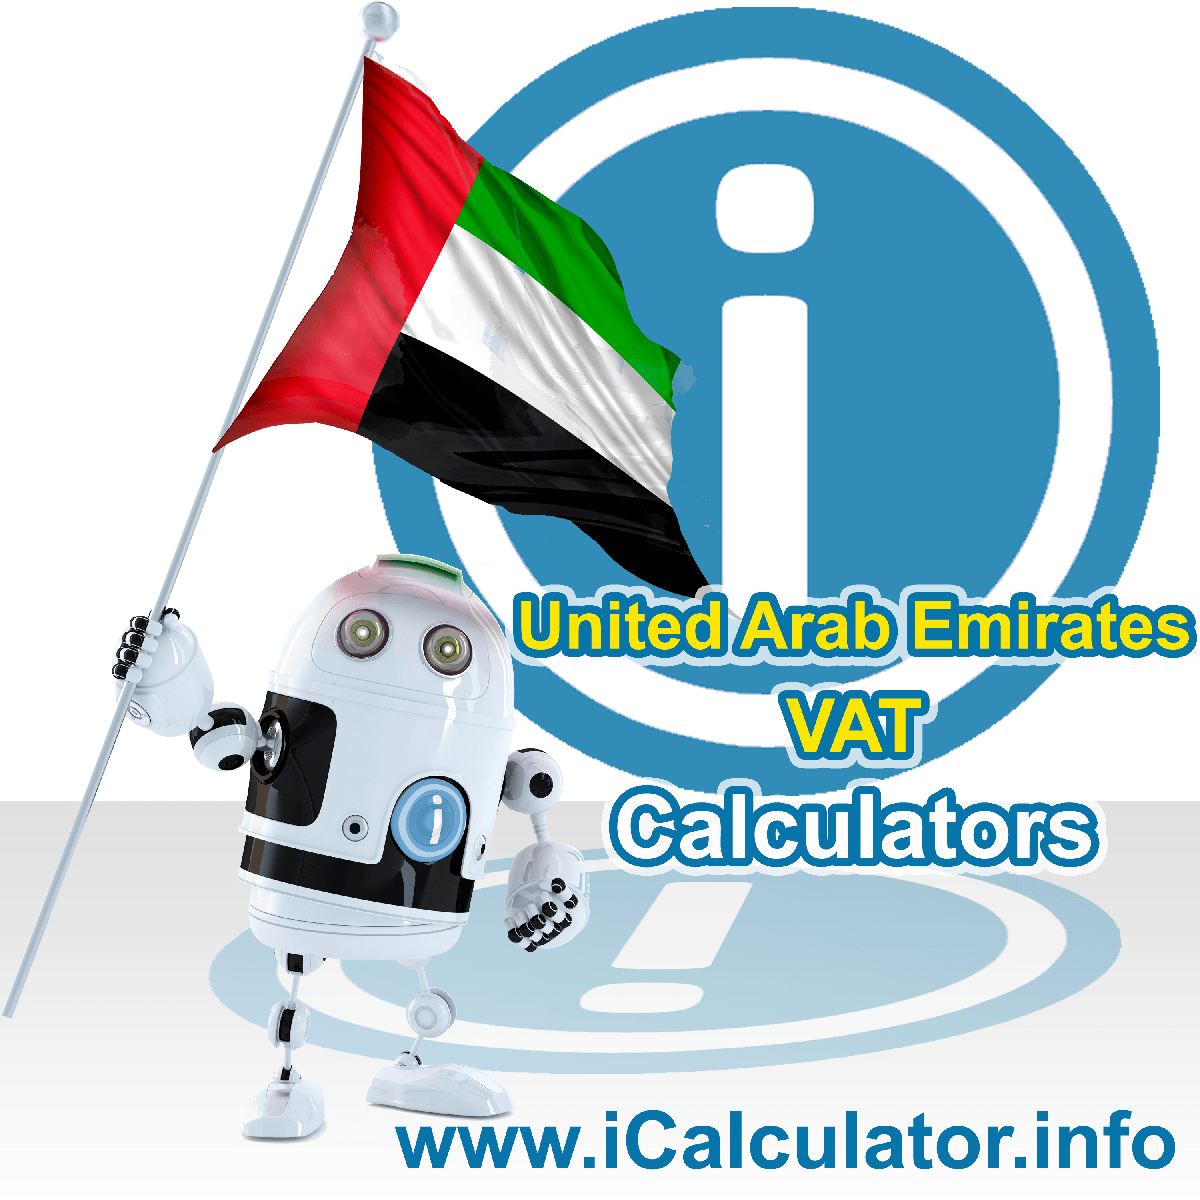 United Arab Emirates VAT Calculator. This image shows the United Arab Emirates flag and information relating to the VAT formula used for calculating Value Added Tax in United Arab Emirates using the United Arab Emirates VAT Calculator in 2021